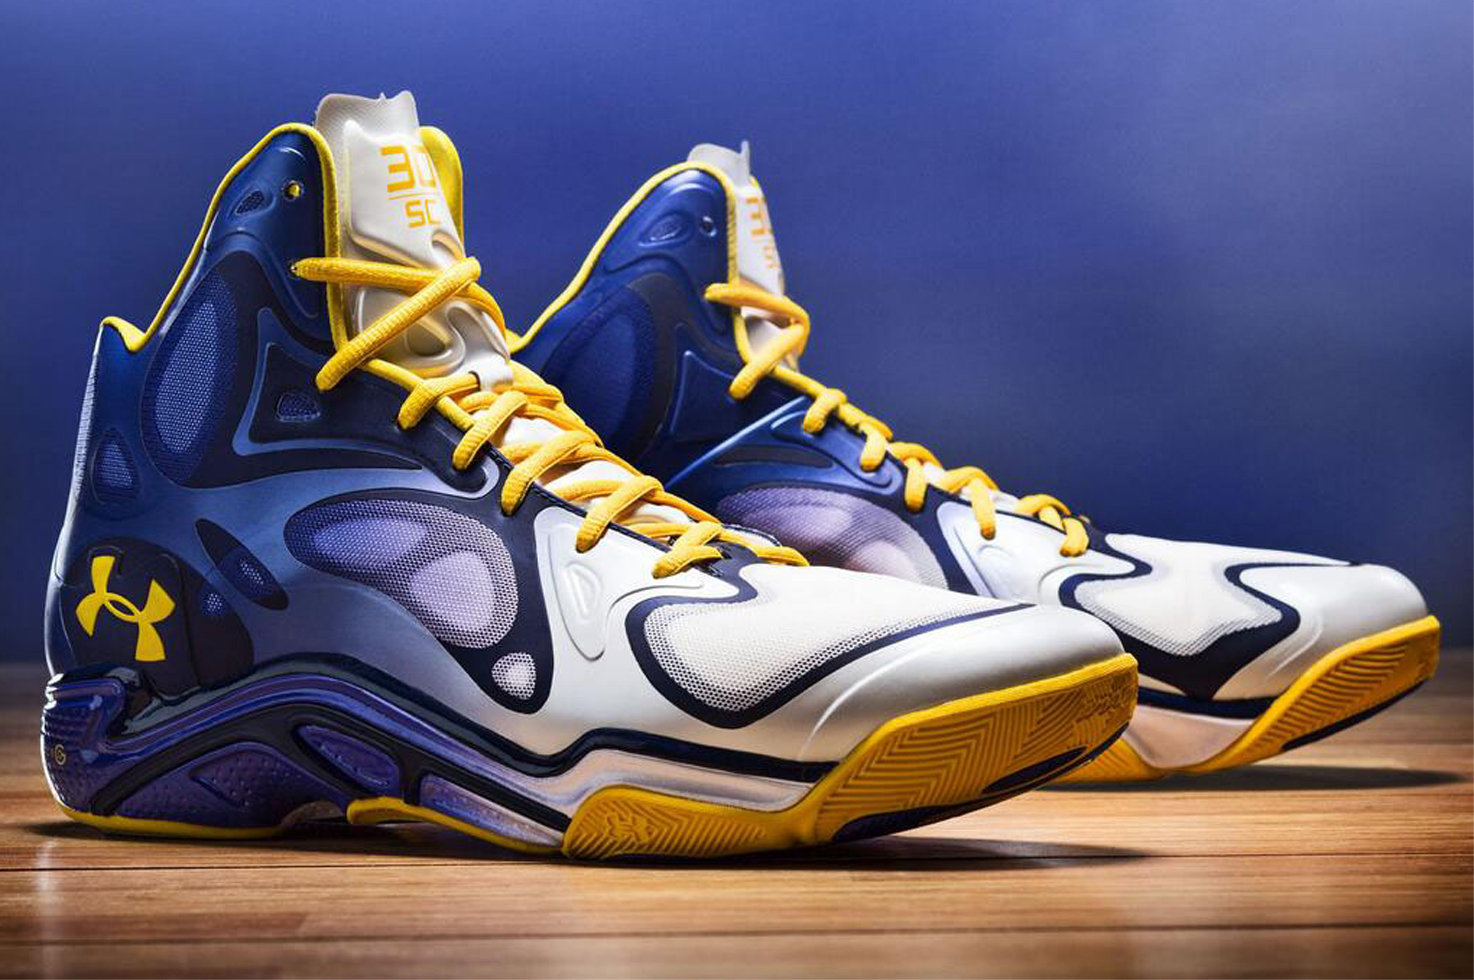 Under Armour Anatomix Spawn 'The Bay' Stephen Curry PE - Available Now Main